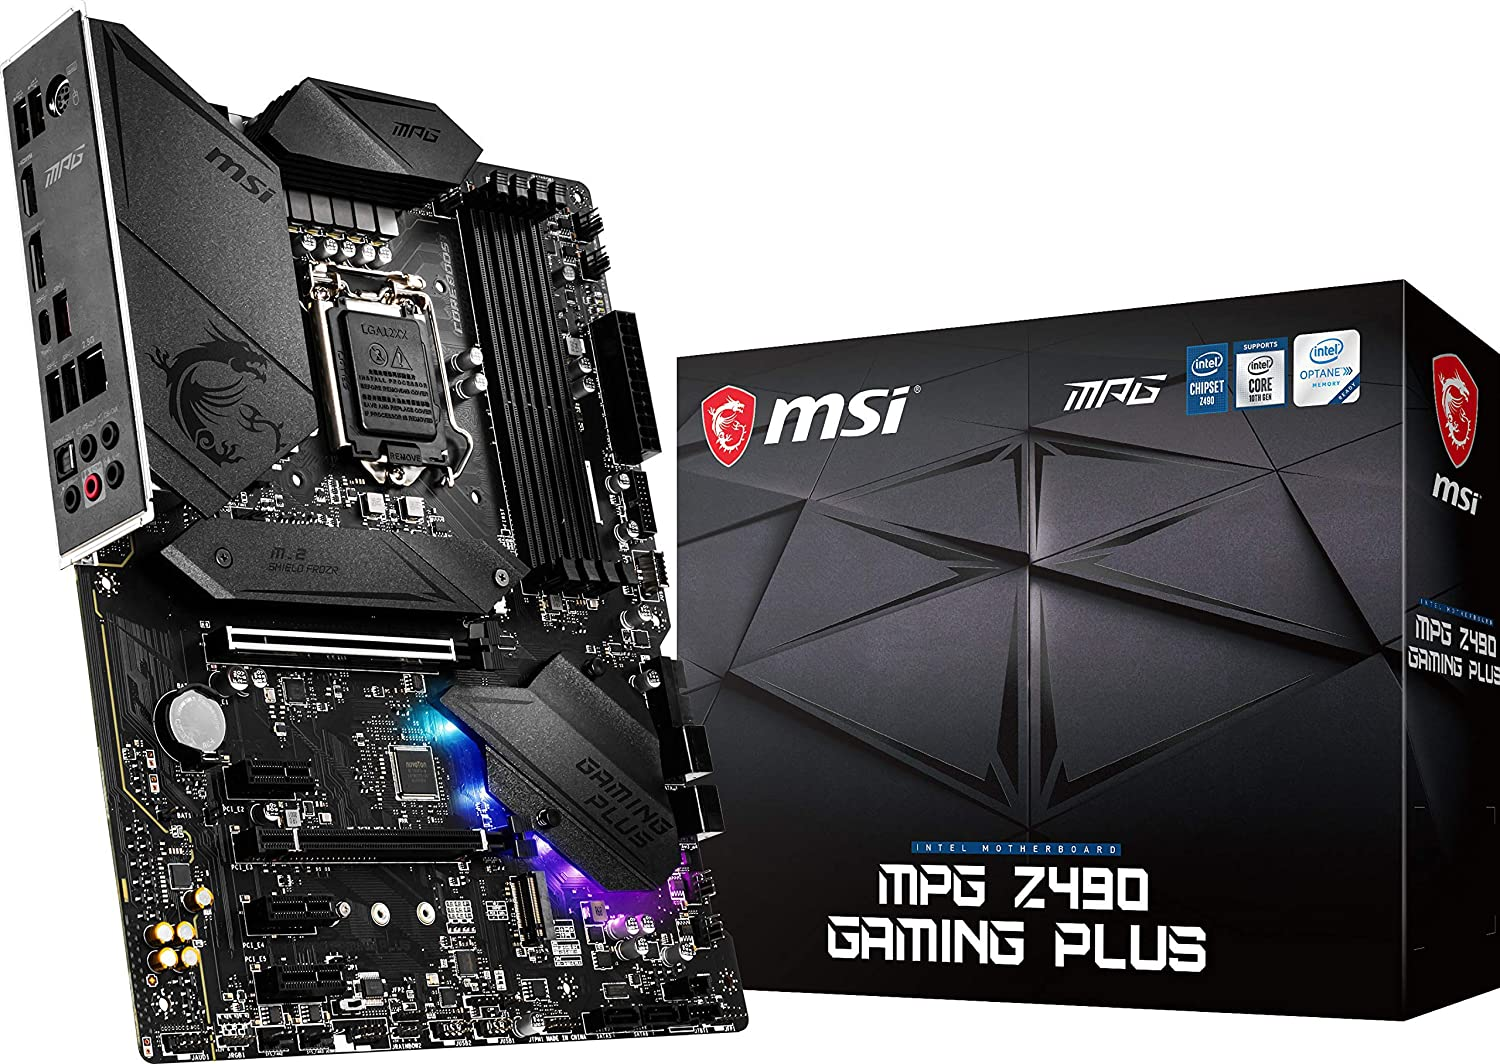 MSI MPG Z490 Gaming Plus Gaming Motherboard (ATX, 10th Gen Intel Core, LGA 1200 Socket, DDR4, CF, Dual M.2 Slots, USB 3.2 Gen 2, 2.5G LAN, DP/HDMI, Mystic Light RGB)